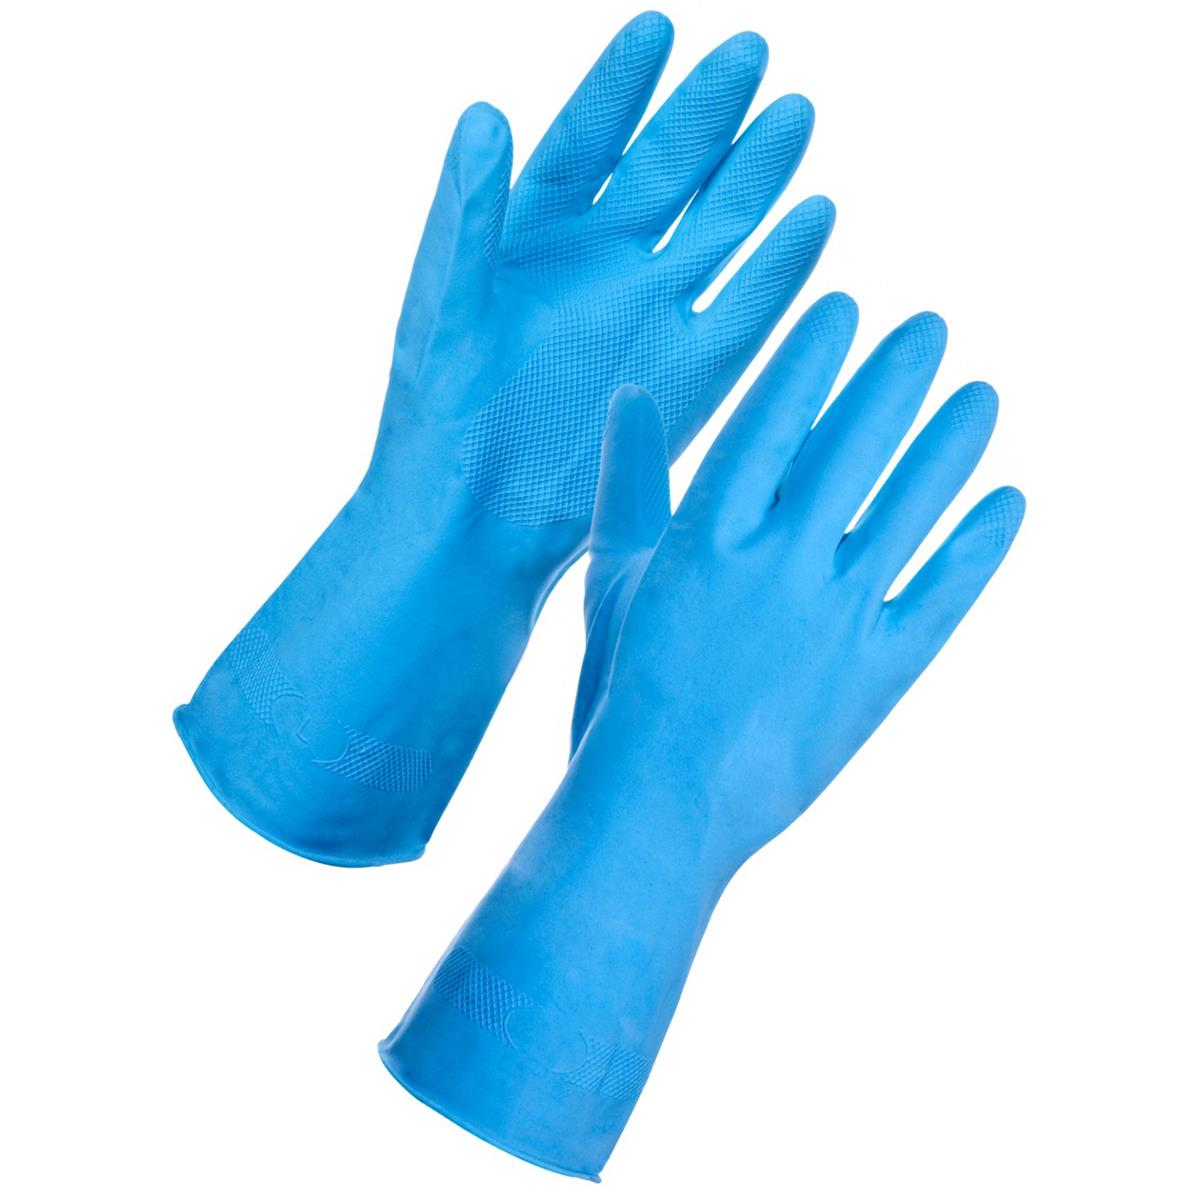 Supertouch Household Latex Gloves Medium Blue Ref 13312 [Pair]